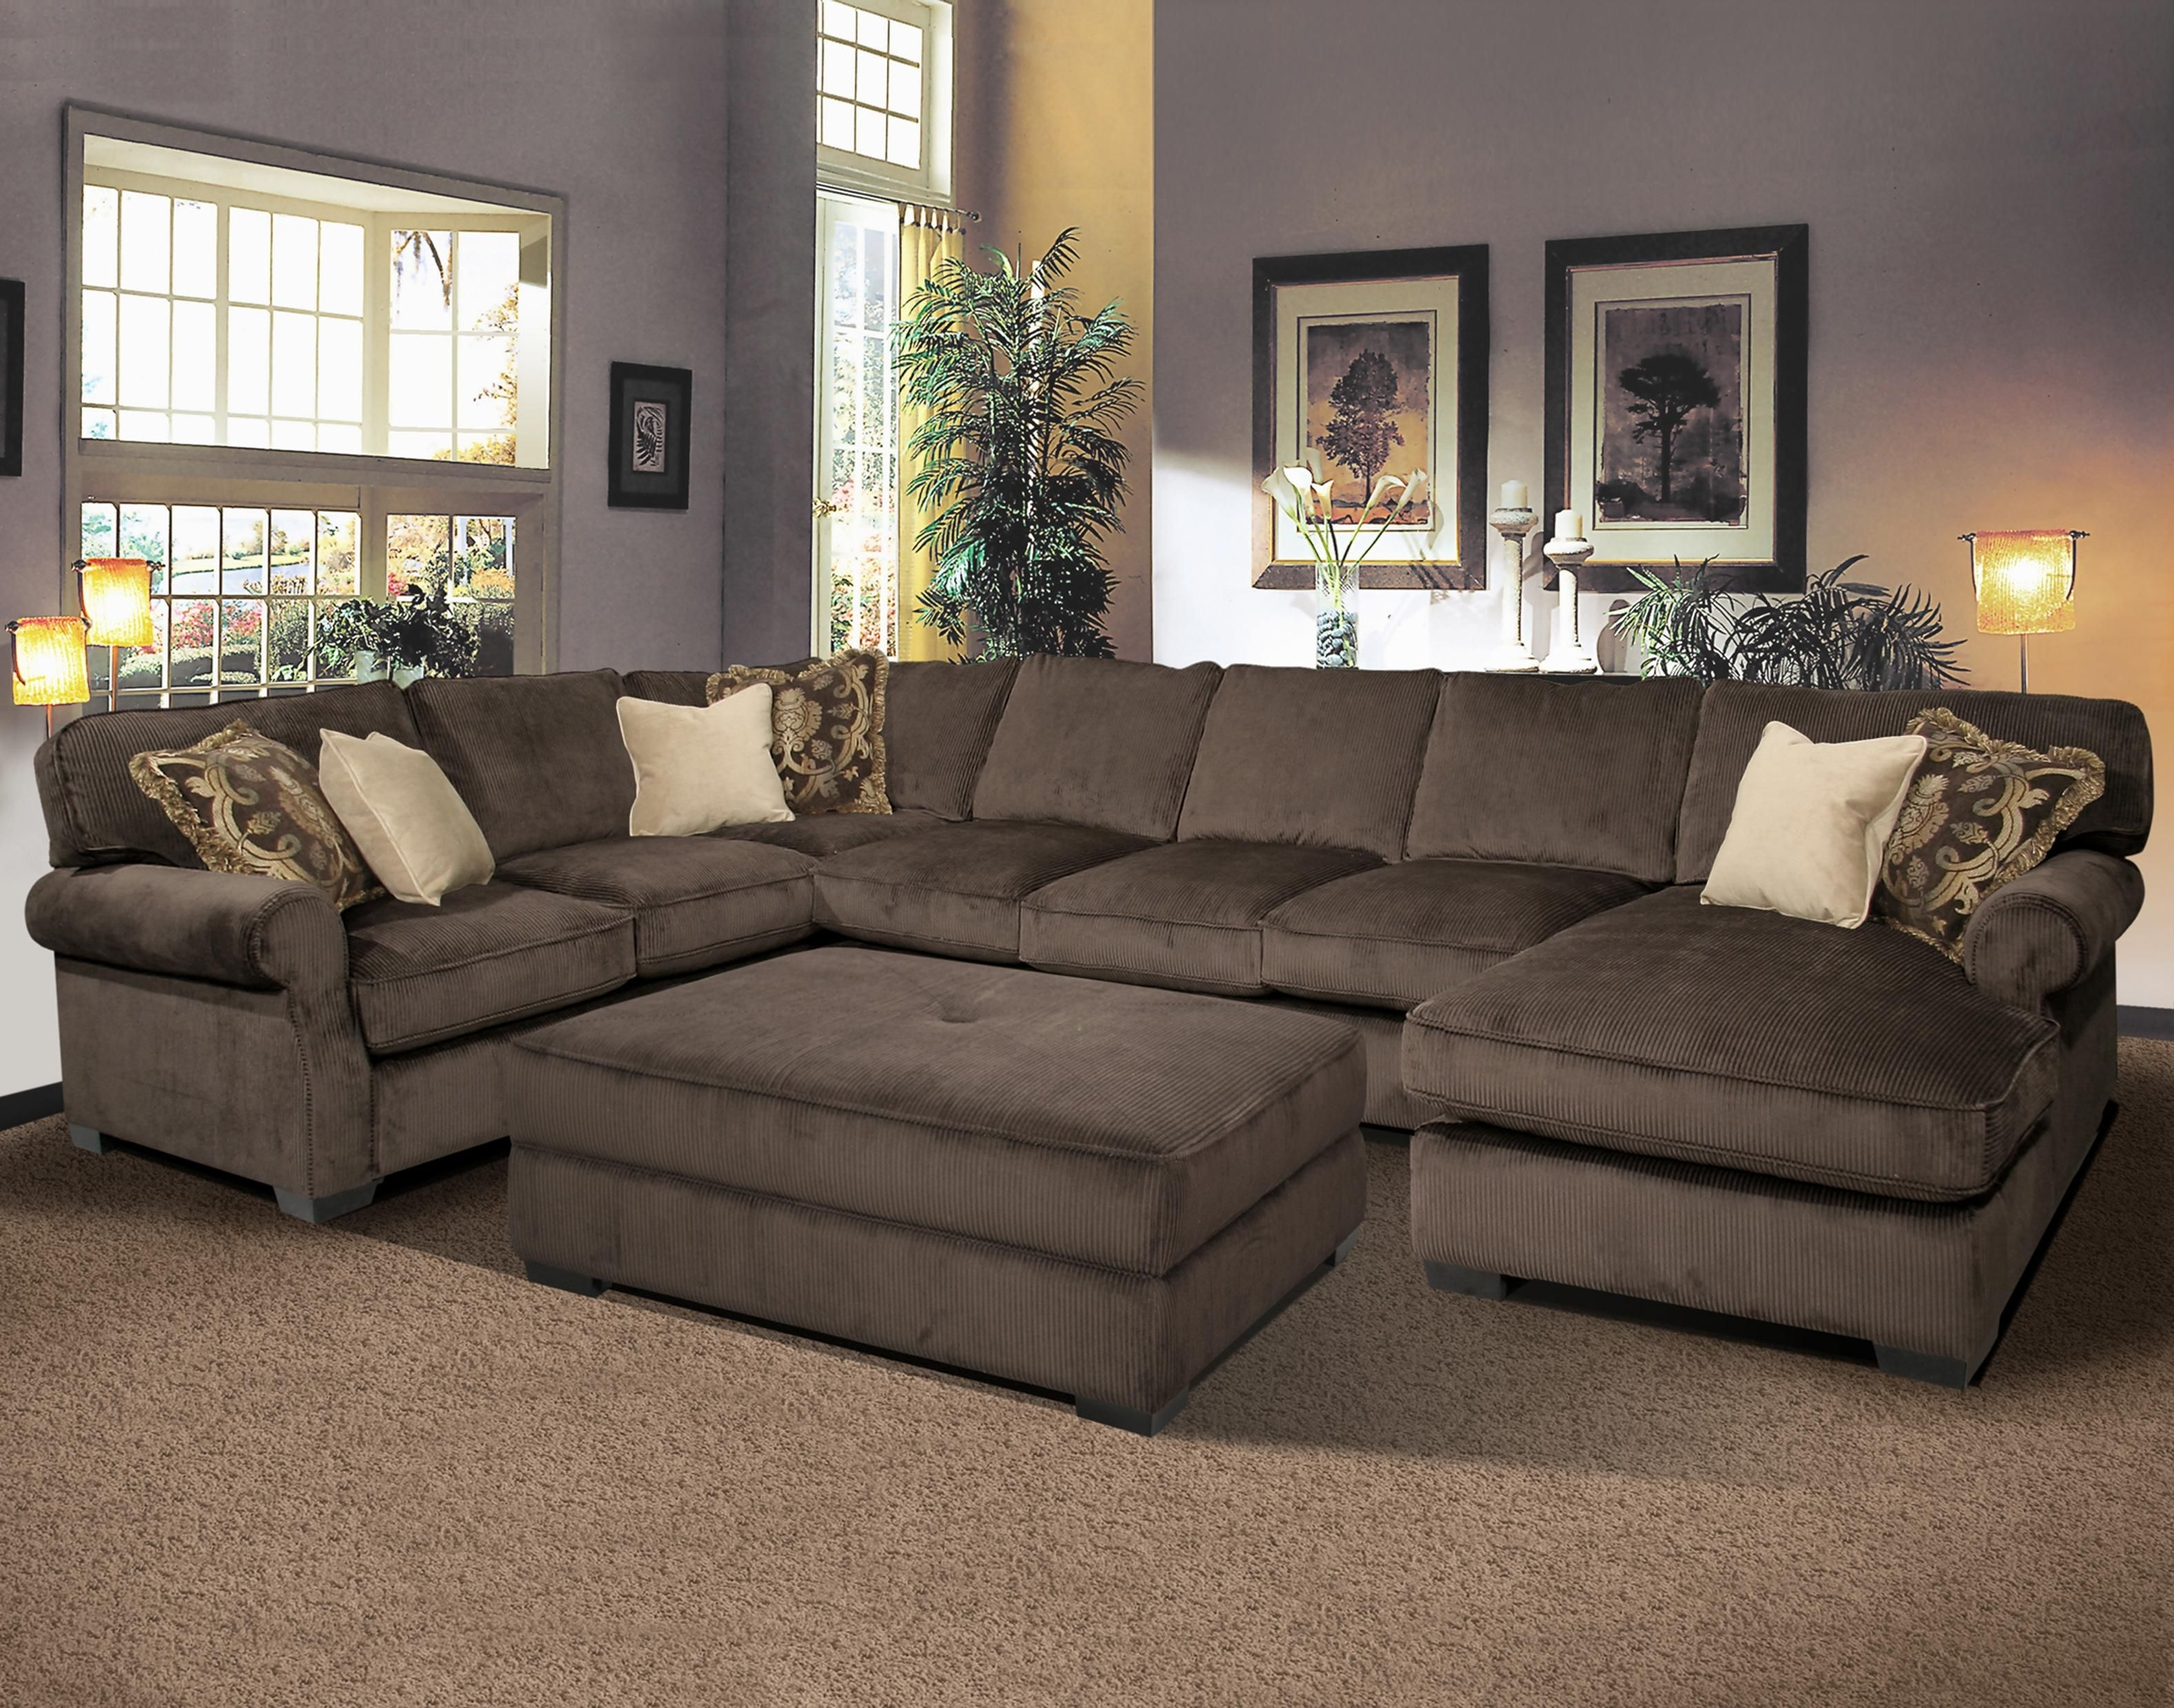 Extra Large Sectional Sofa With Chaise | Sofas & Futons | Pinterest With Regard To Grande Prairie Ab Sectional Sofas (Image 6 of 10)